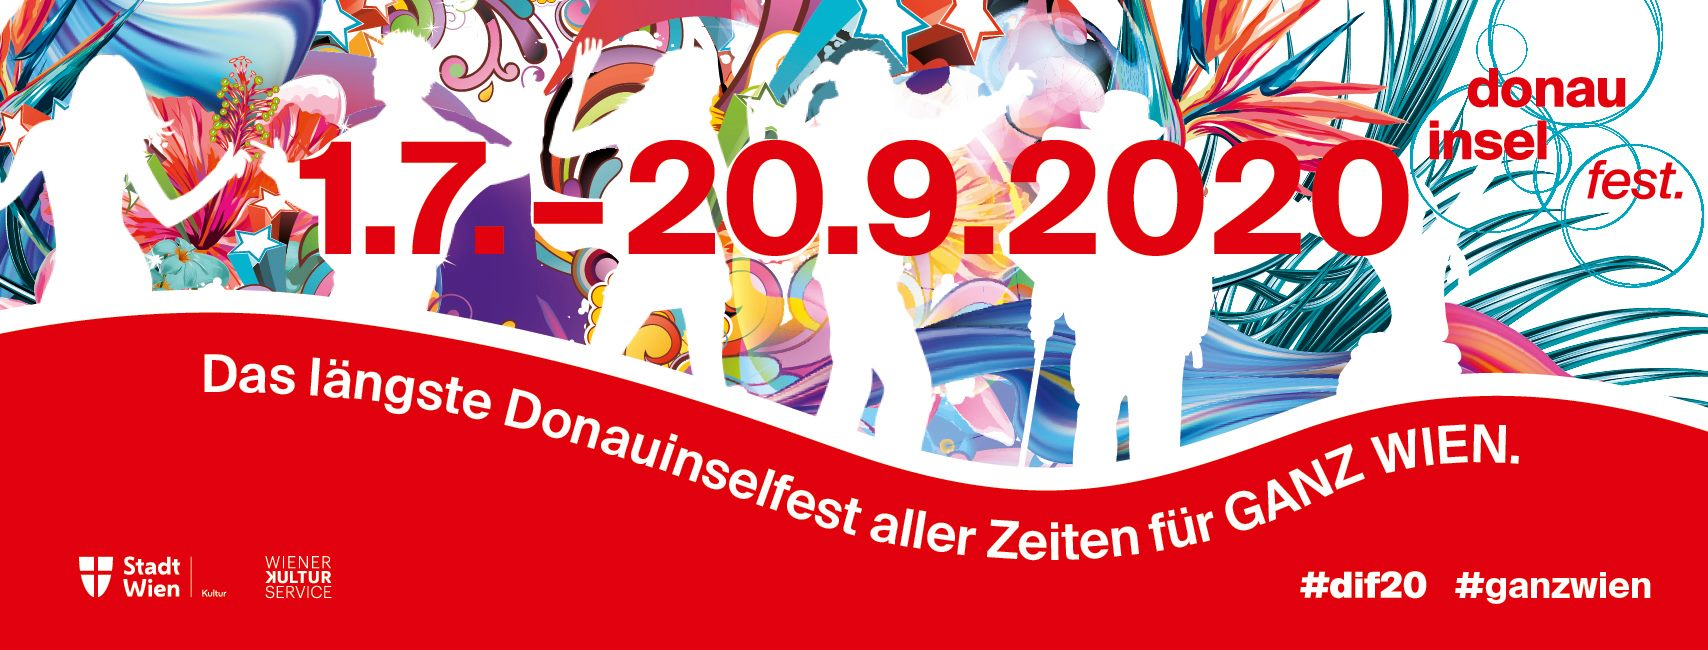 Donauinselfest 2020 am 1. July 2020 @ Diverse Locations.